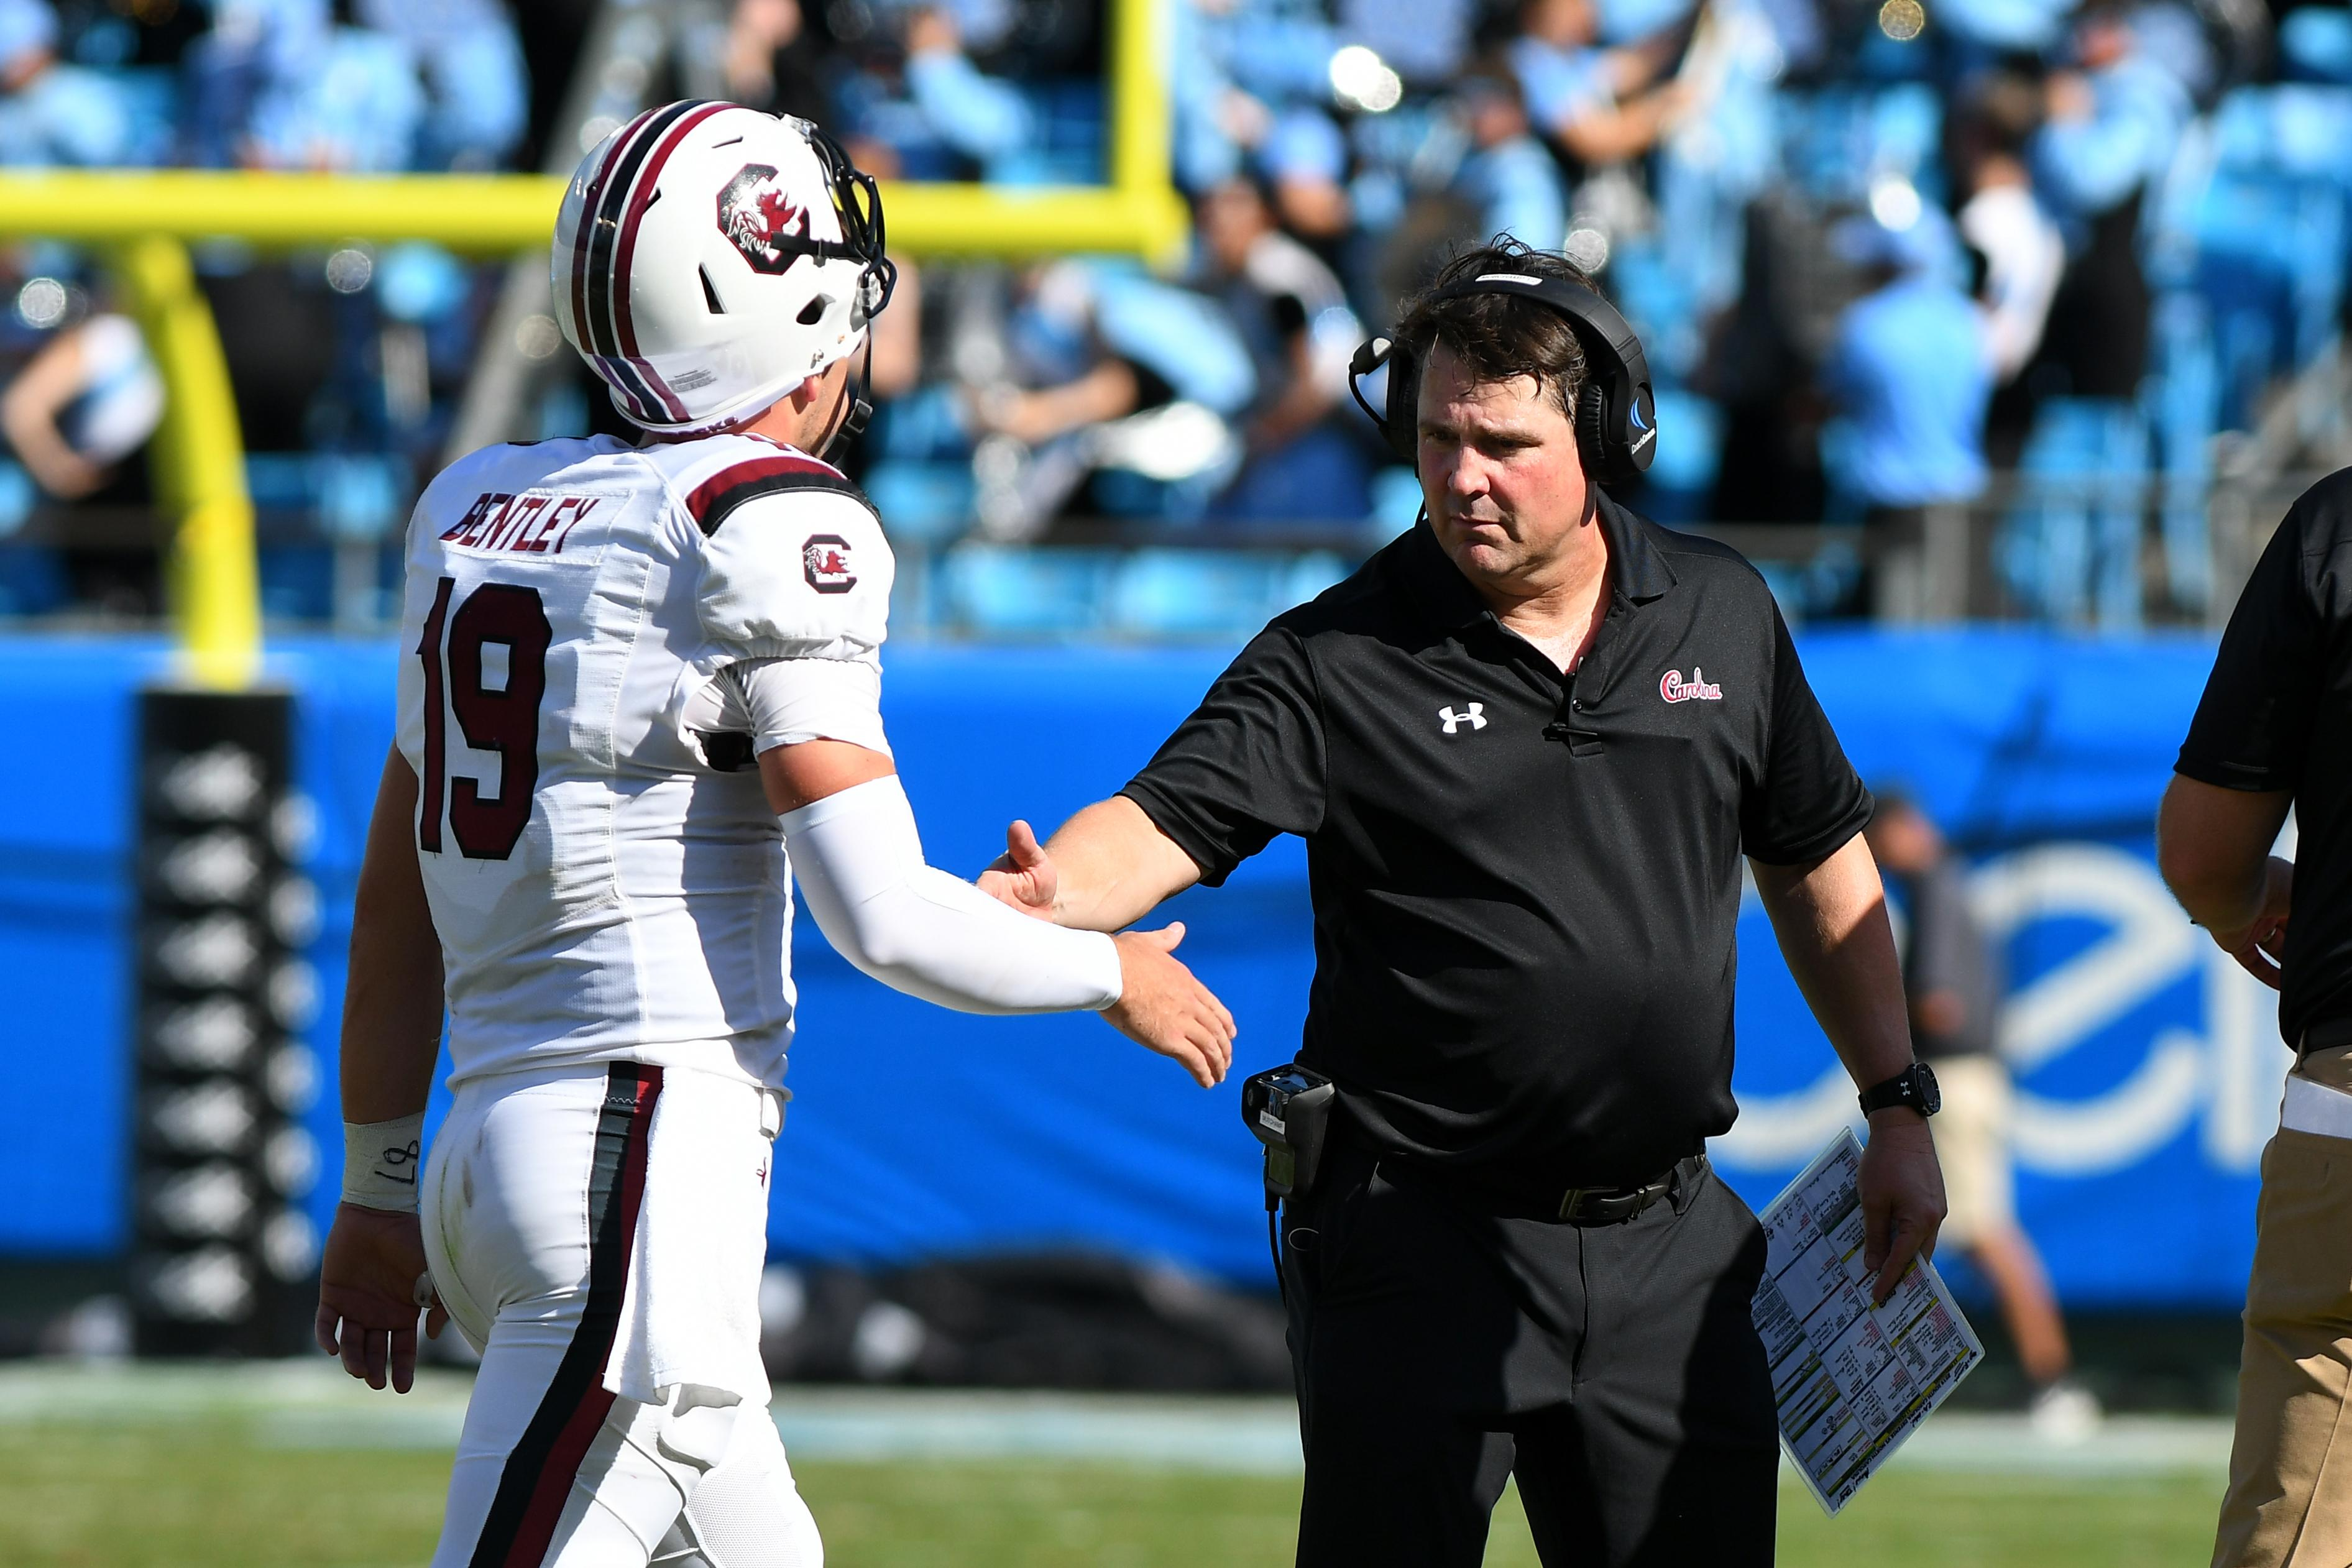 officially-out-for-the-year-south-carolina-qb-jake-bentley-could-have-tricky-decision-ahead